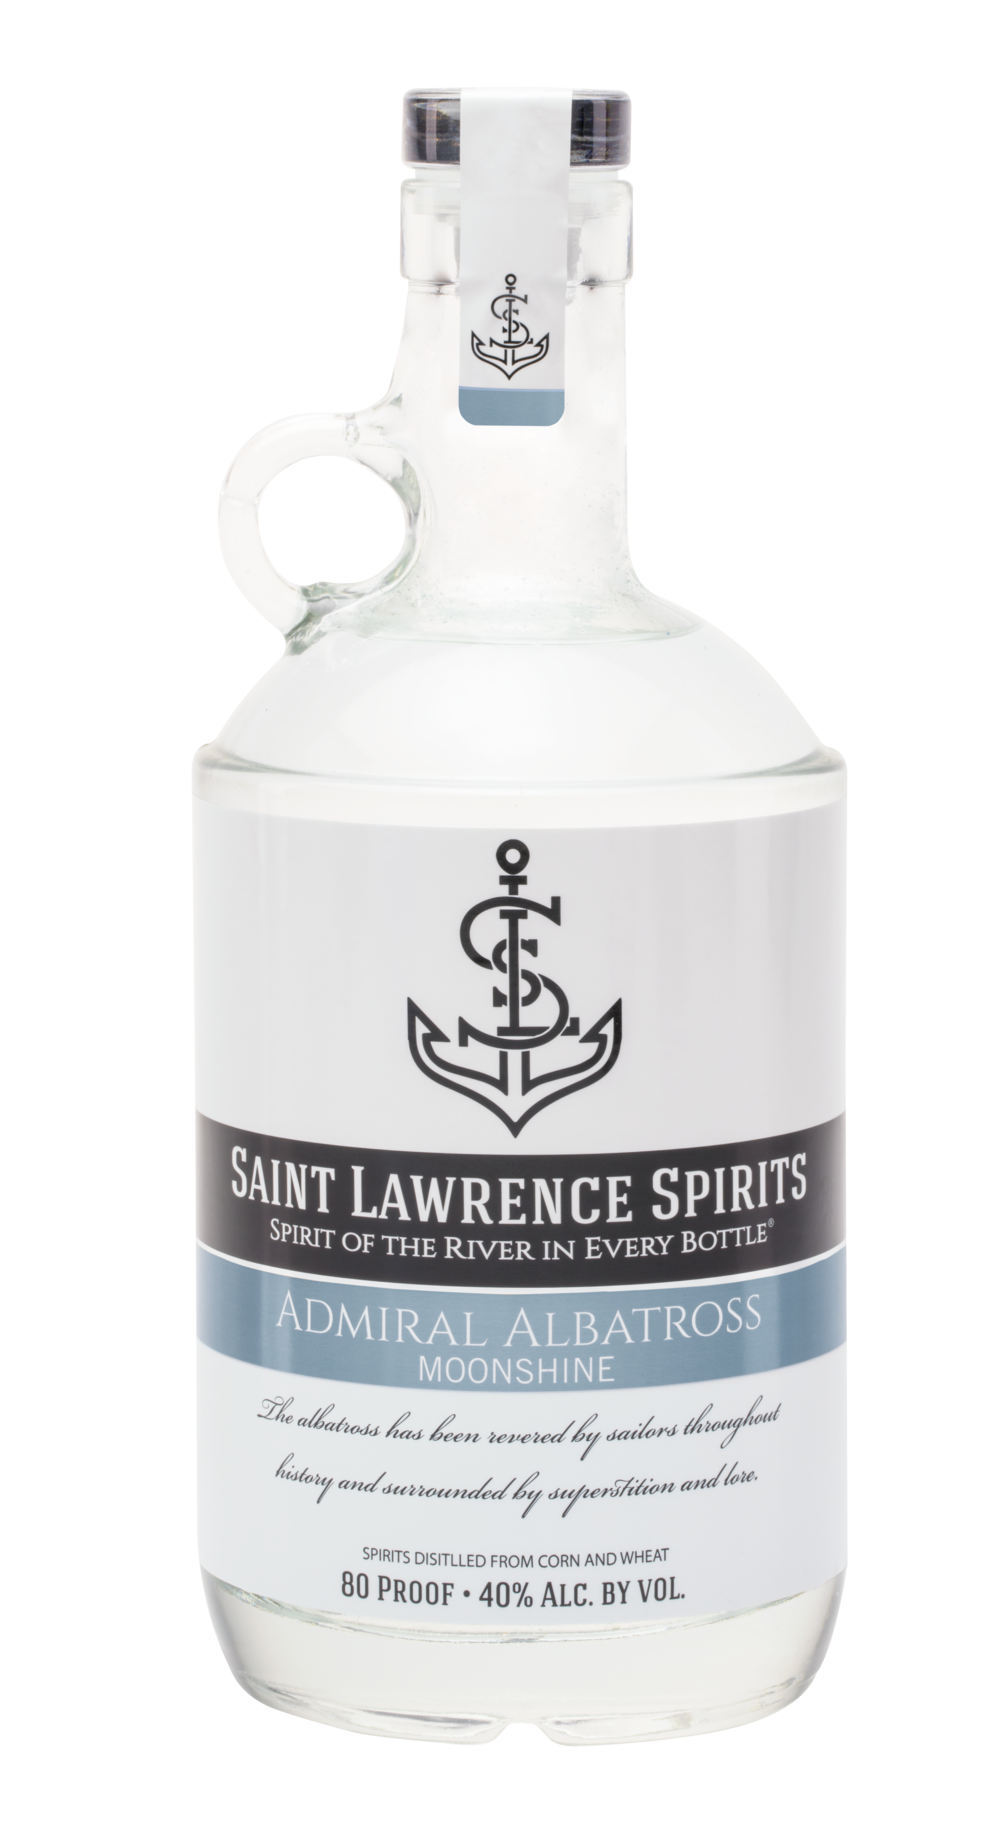 Admirals Albatross Moonshine - 80 Proof. Sweet, Buttery, Smooth